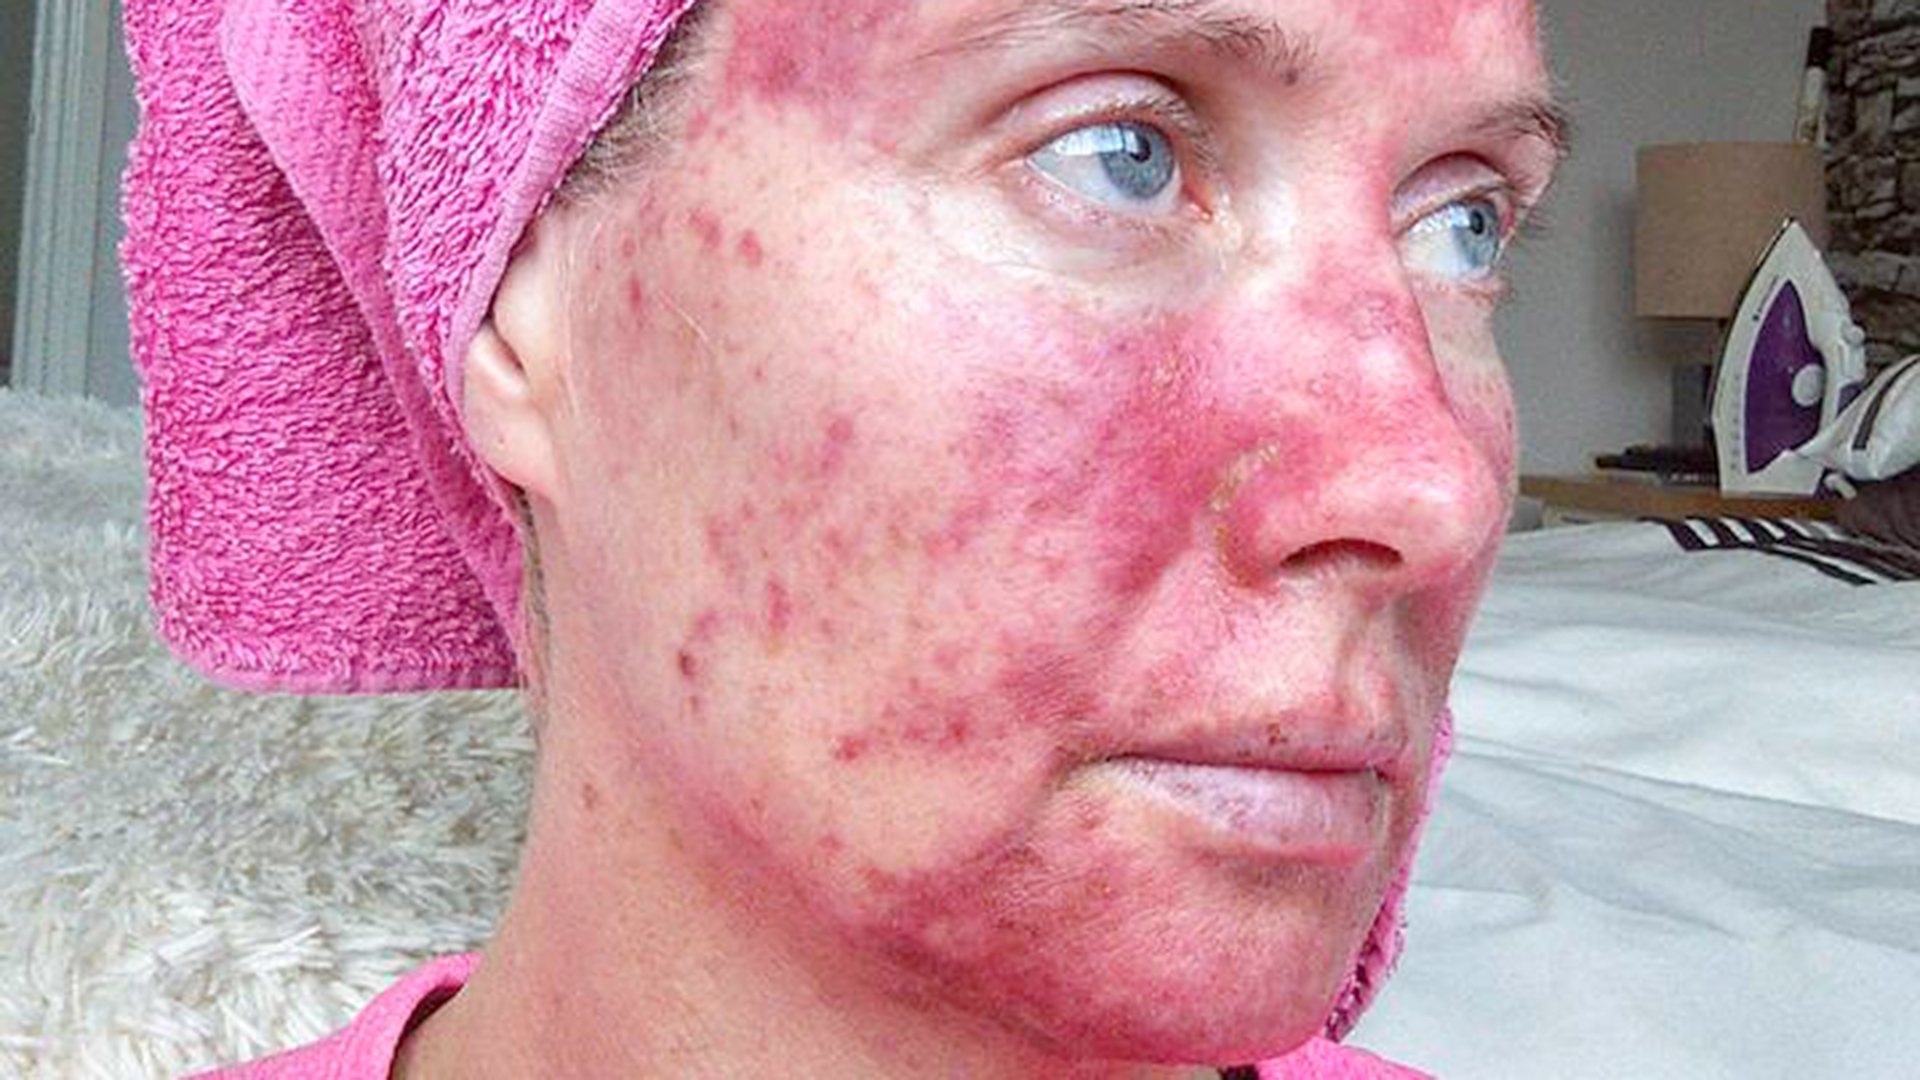 Actinic keratosis: Woman shows treatment with painful photos